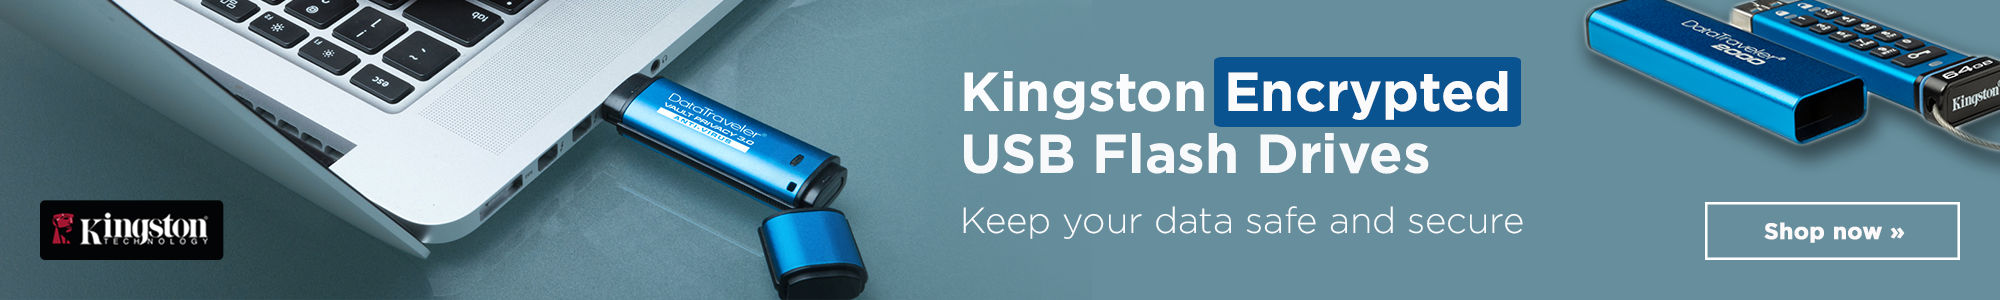 Shop Kingston Encrypted USB Flash Drives